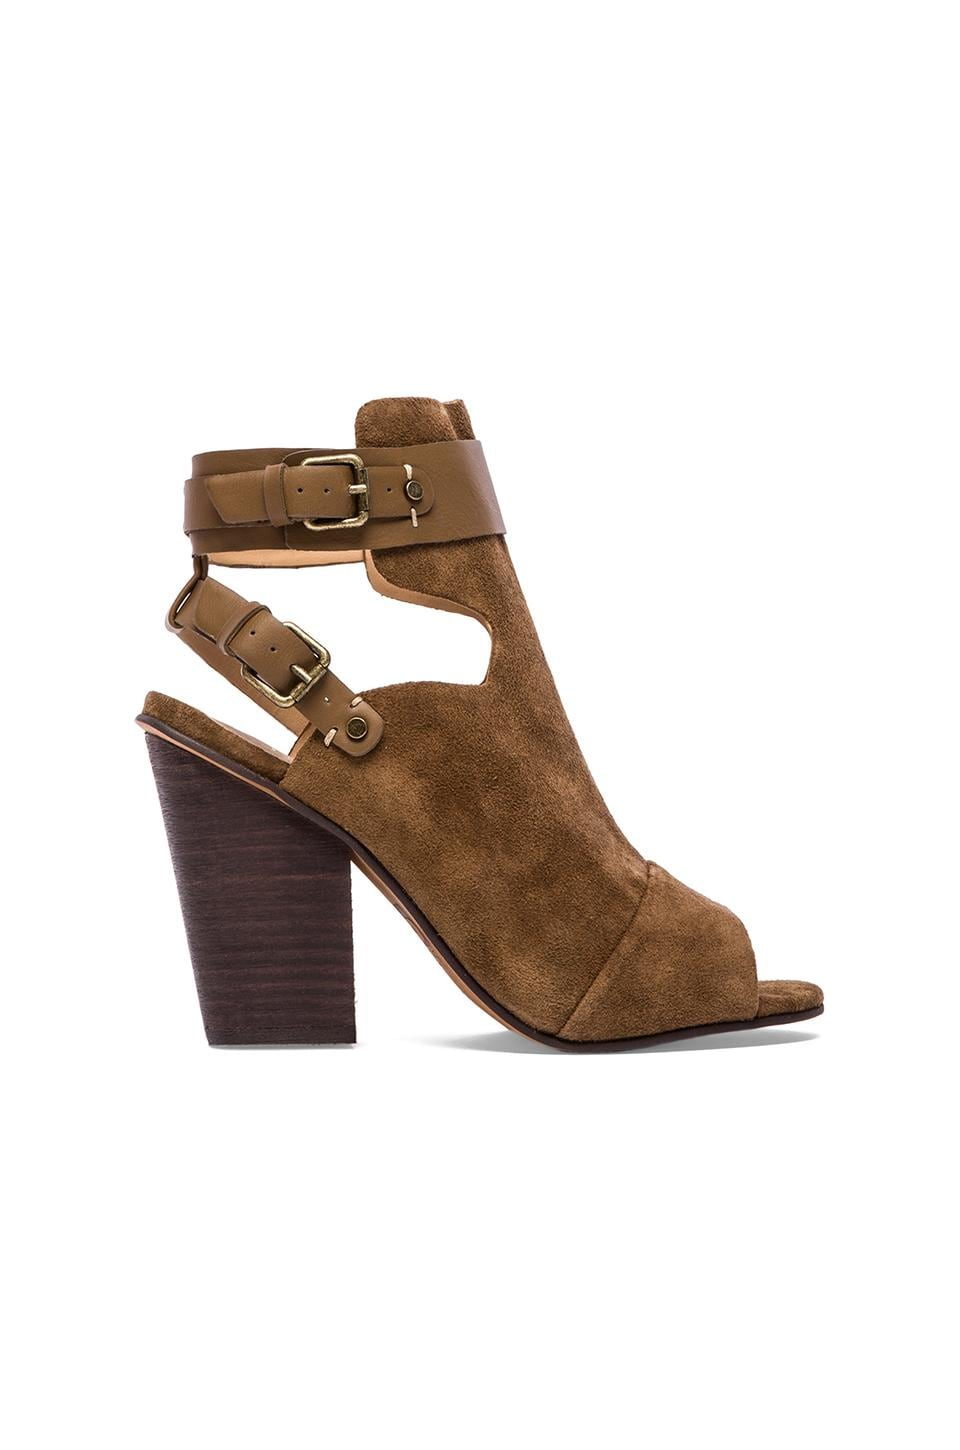 Joe's Jeans Belove Bootie in Khaki